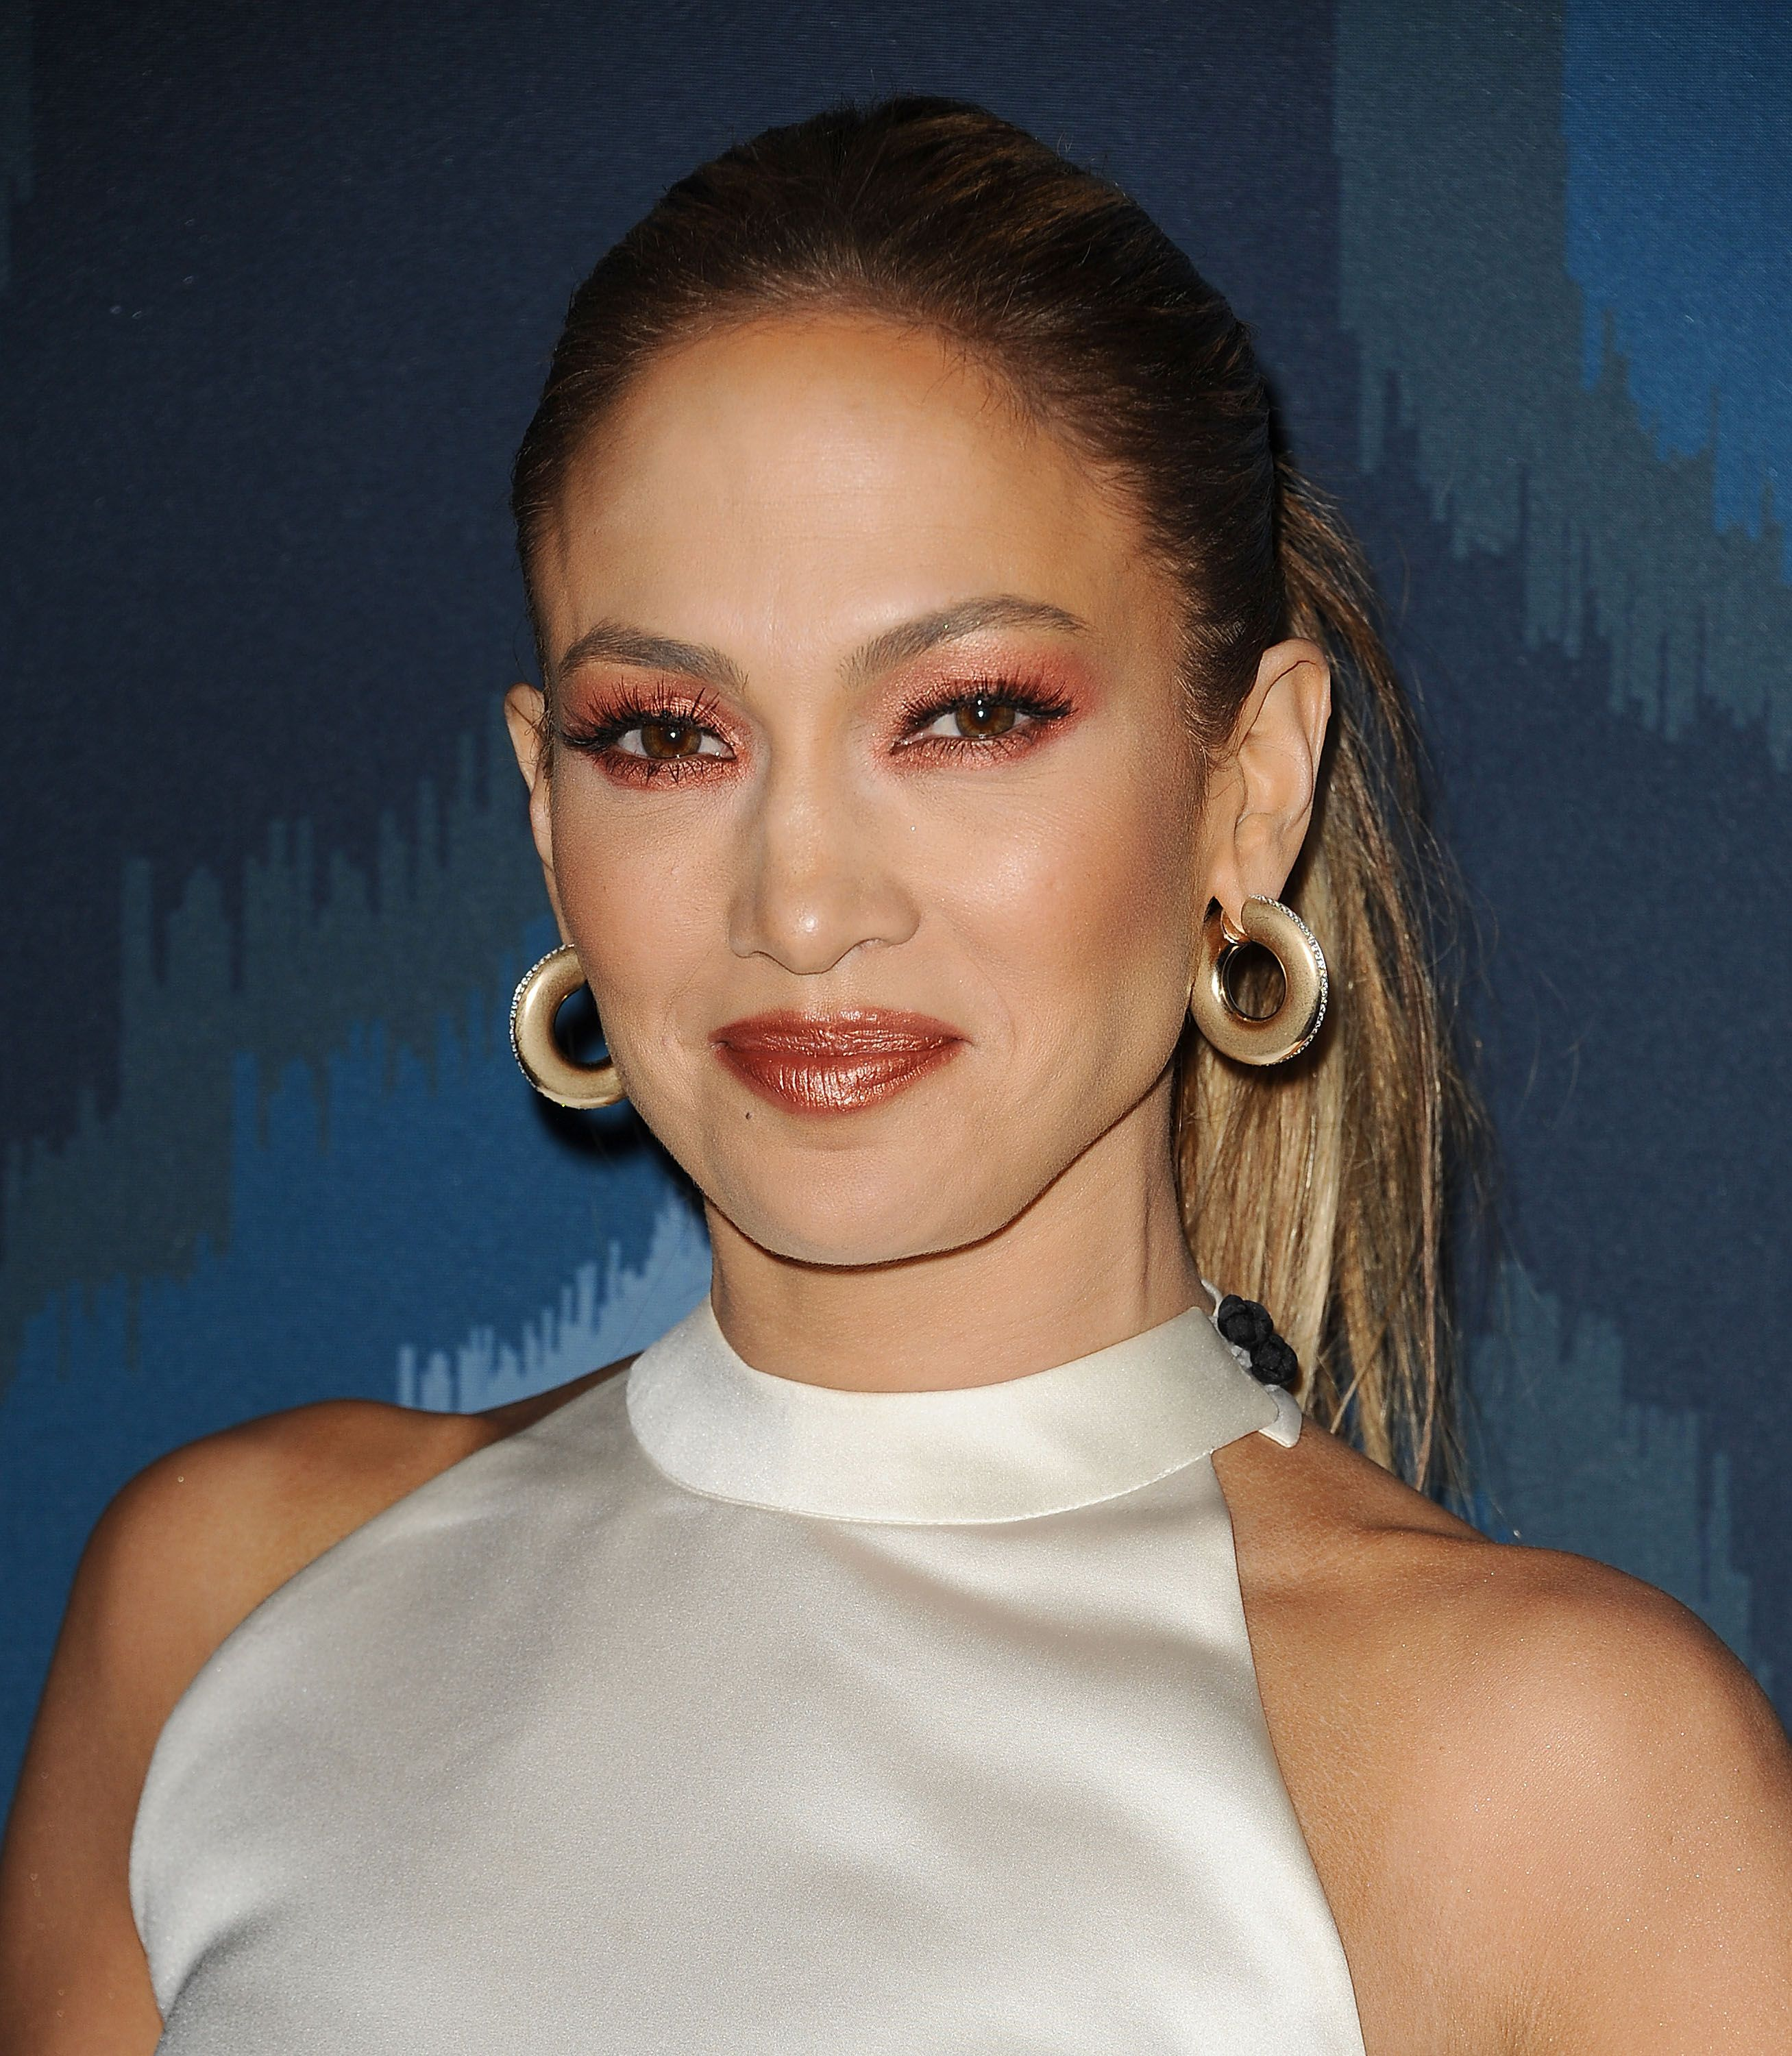 24 Years of Jennifer Lopez's Makeup Looks